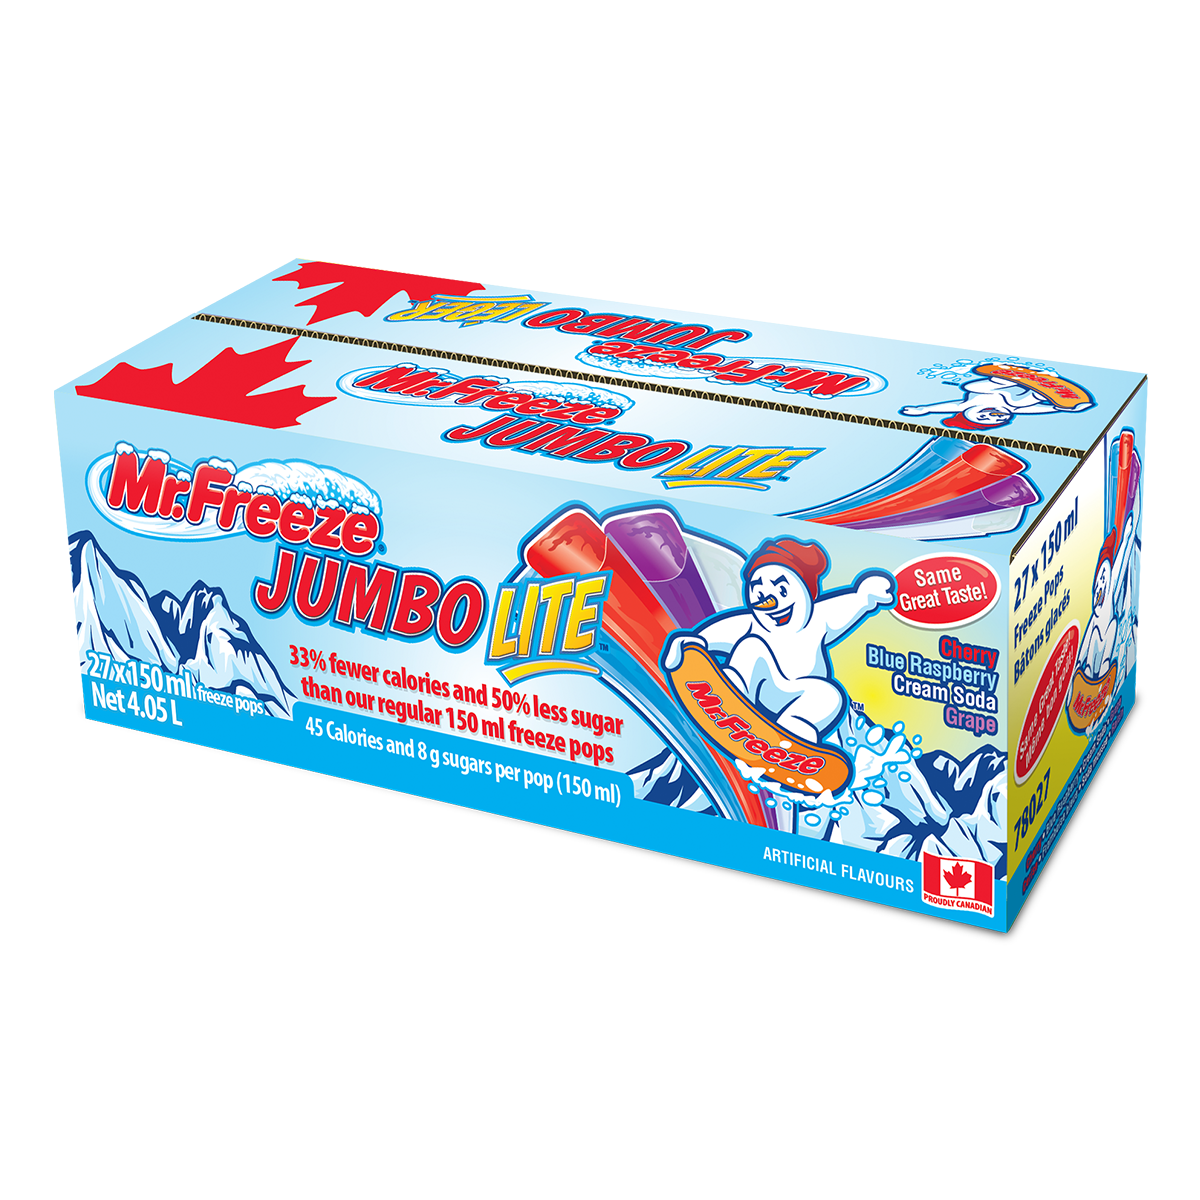 Mr. Freeze Jumbo Lite